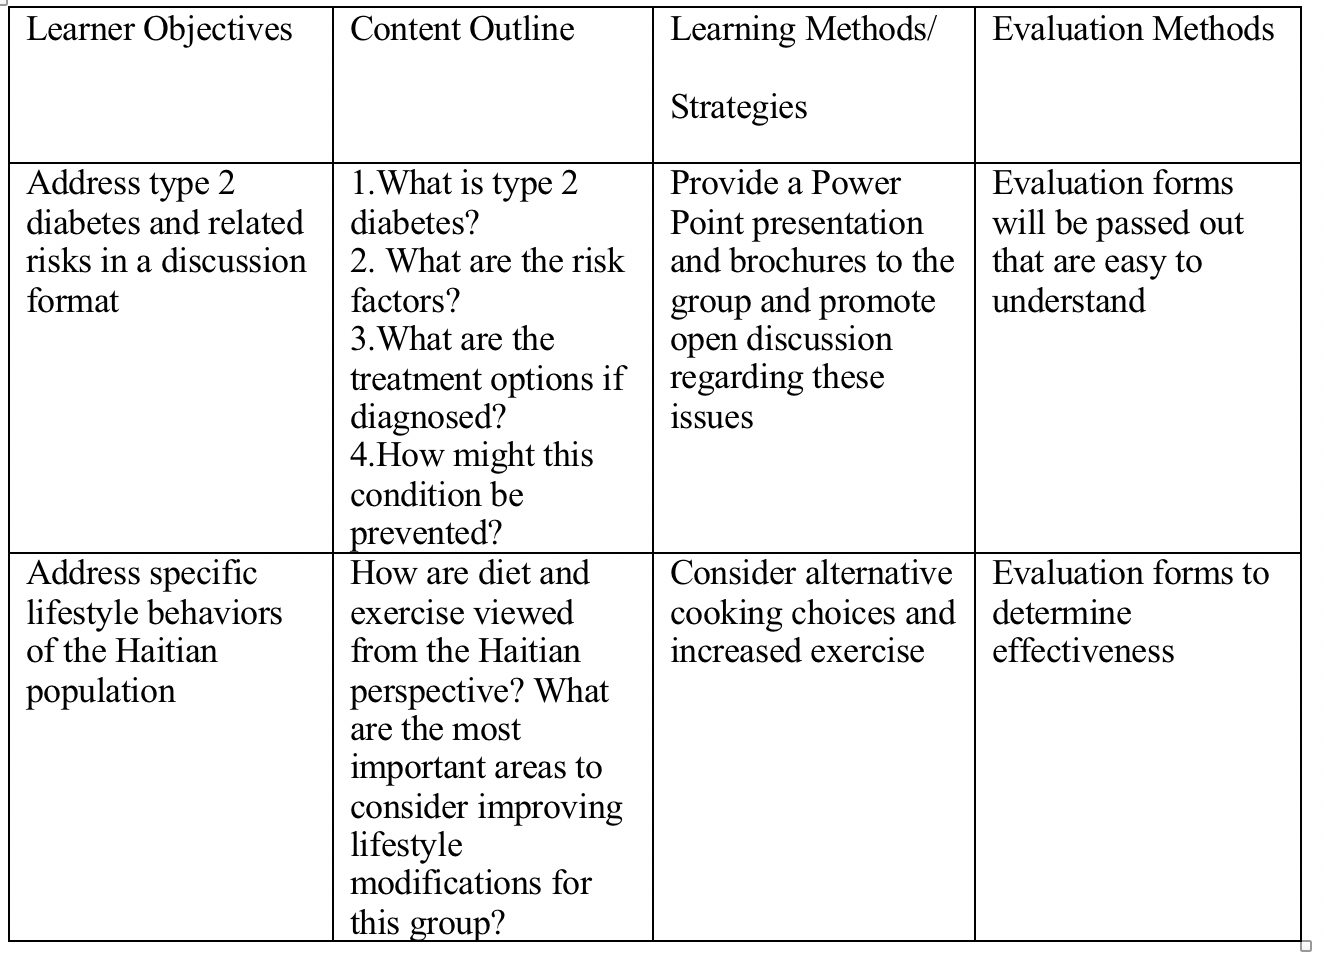 Outline of the lesson plan